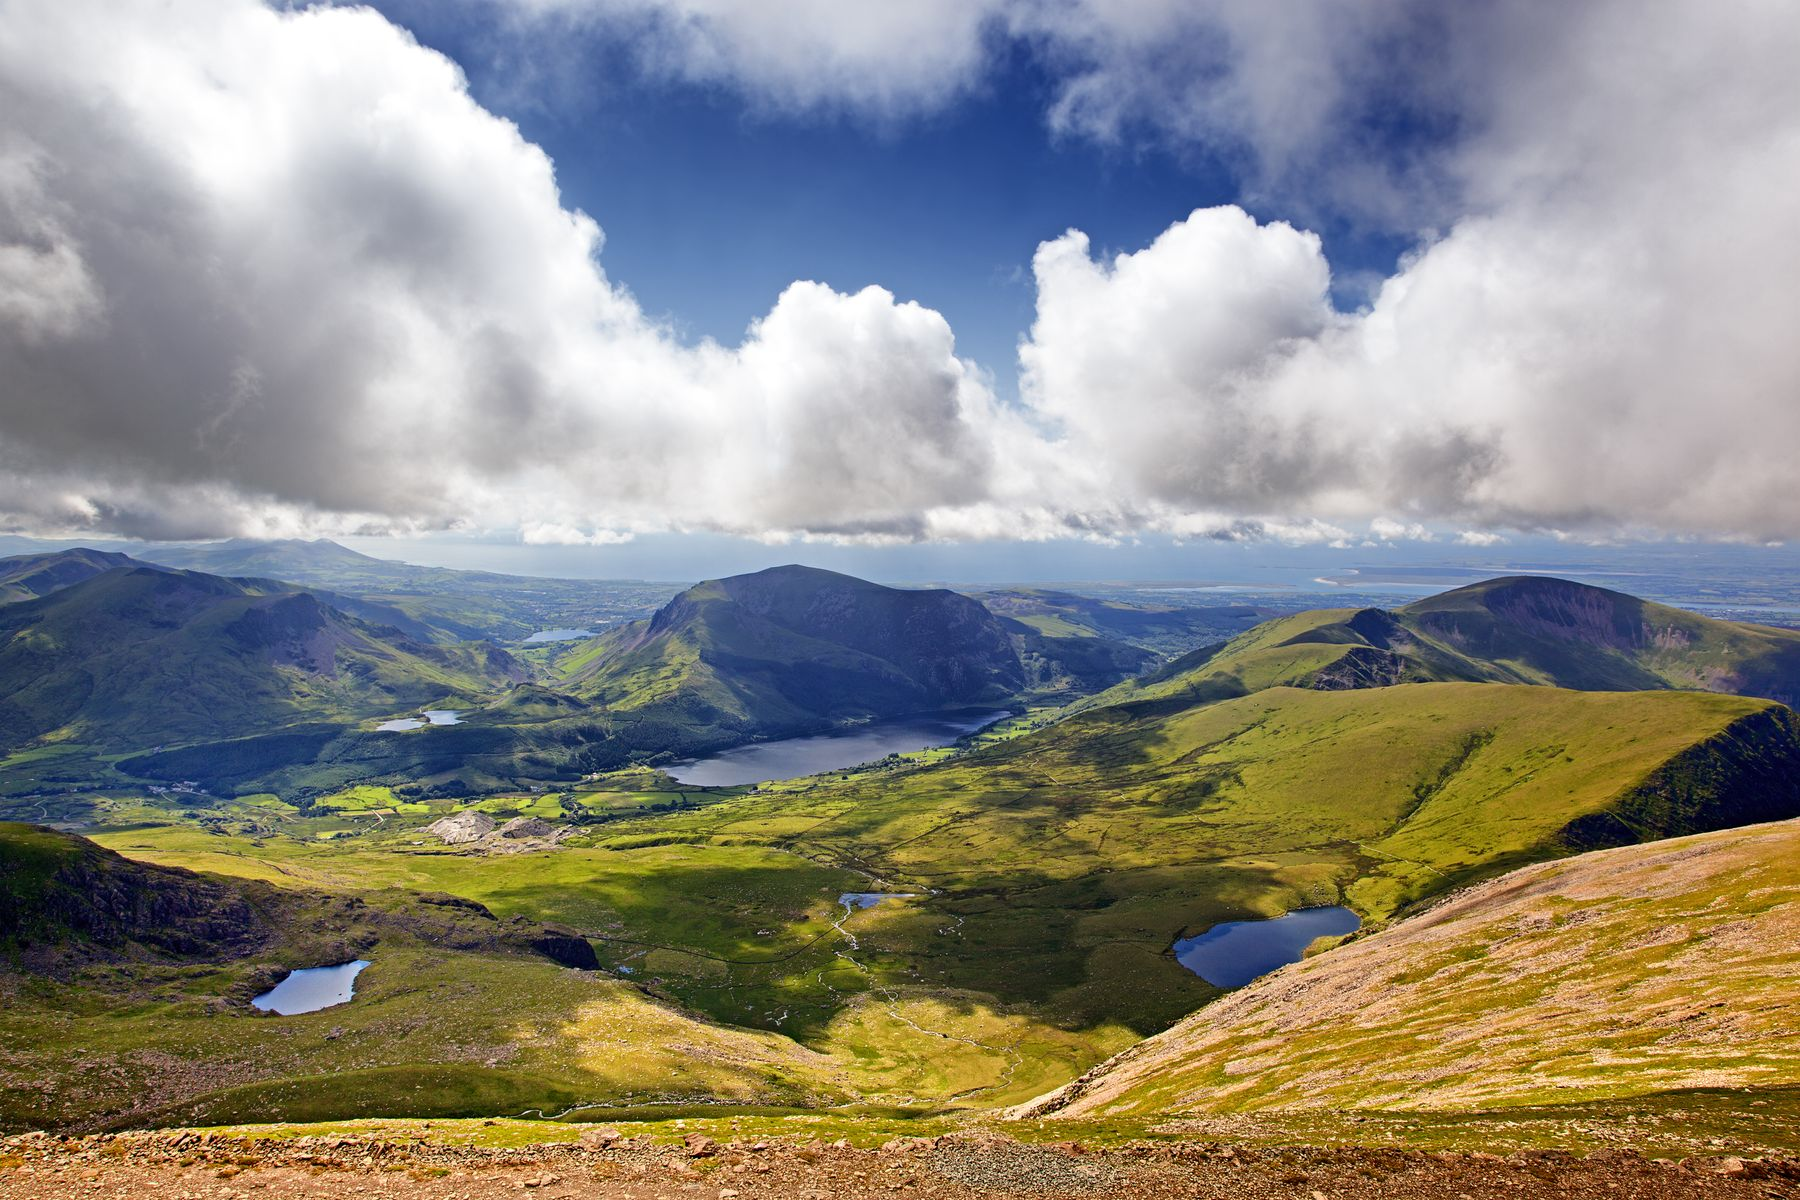 Looking down on the green mountains of Snowdonia, Wales